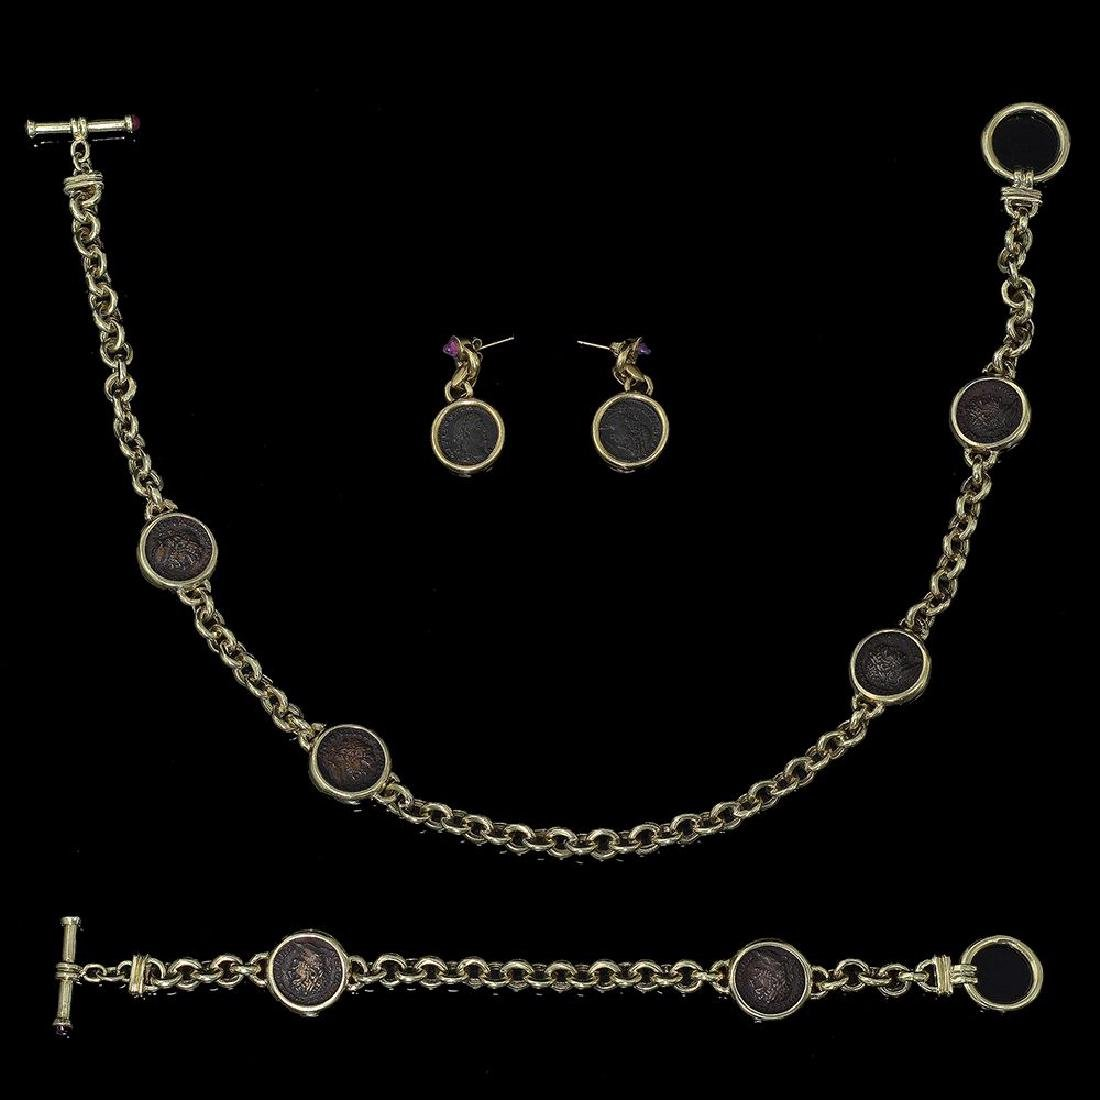 A 14K GOLD NECKLACE BRACLET AND PAIR OF EARRINGS SET